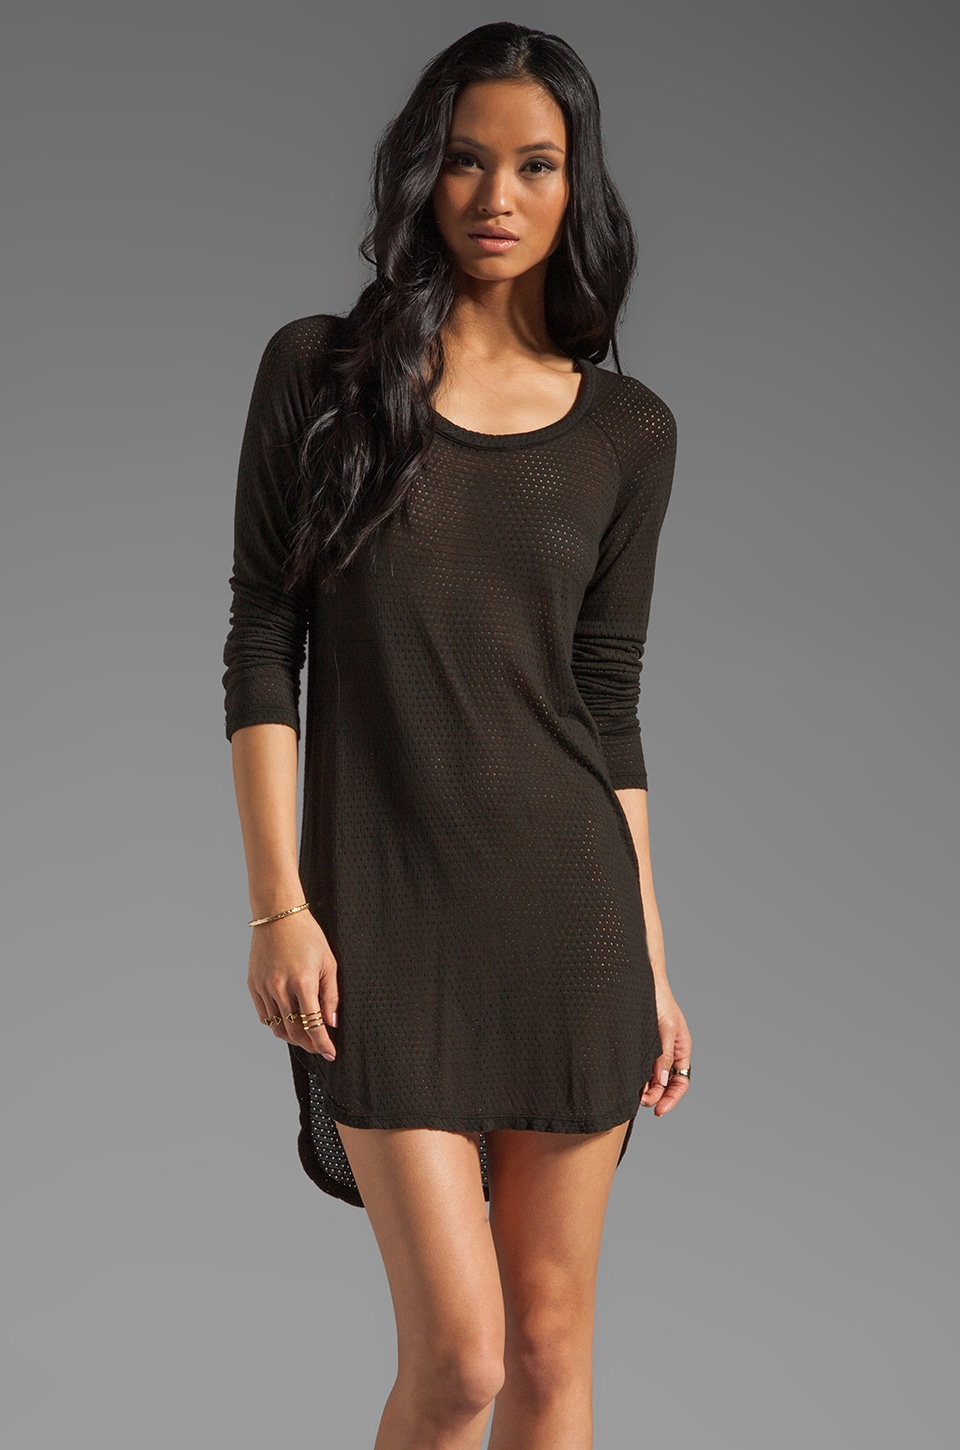 MONROW Performa Jersey Coverup Dress in Black